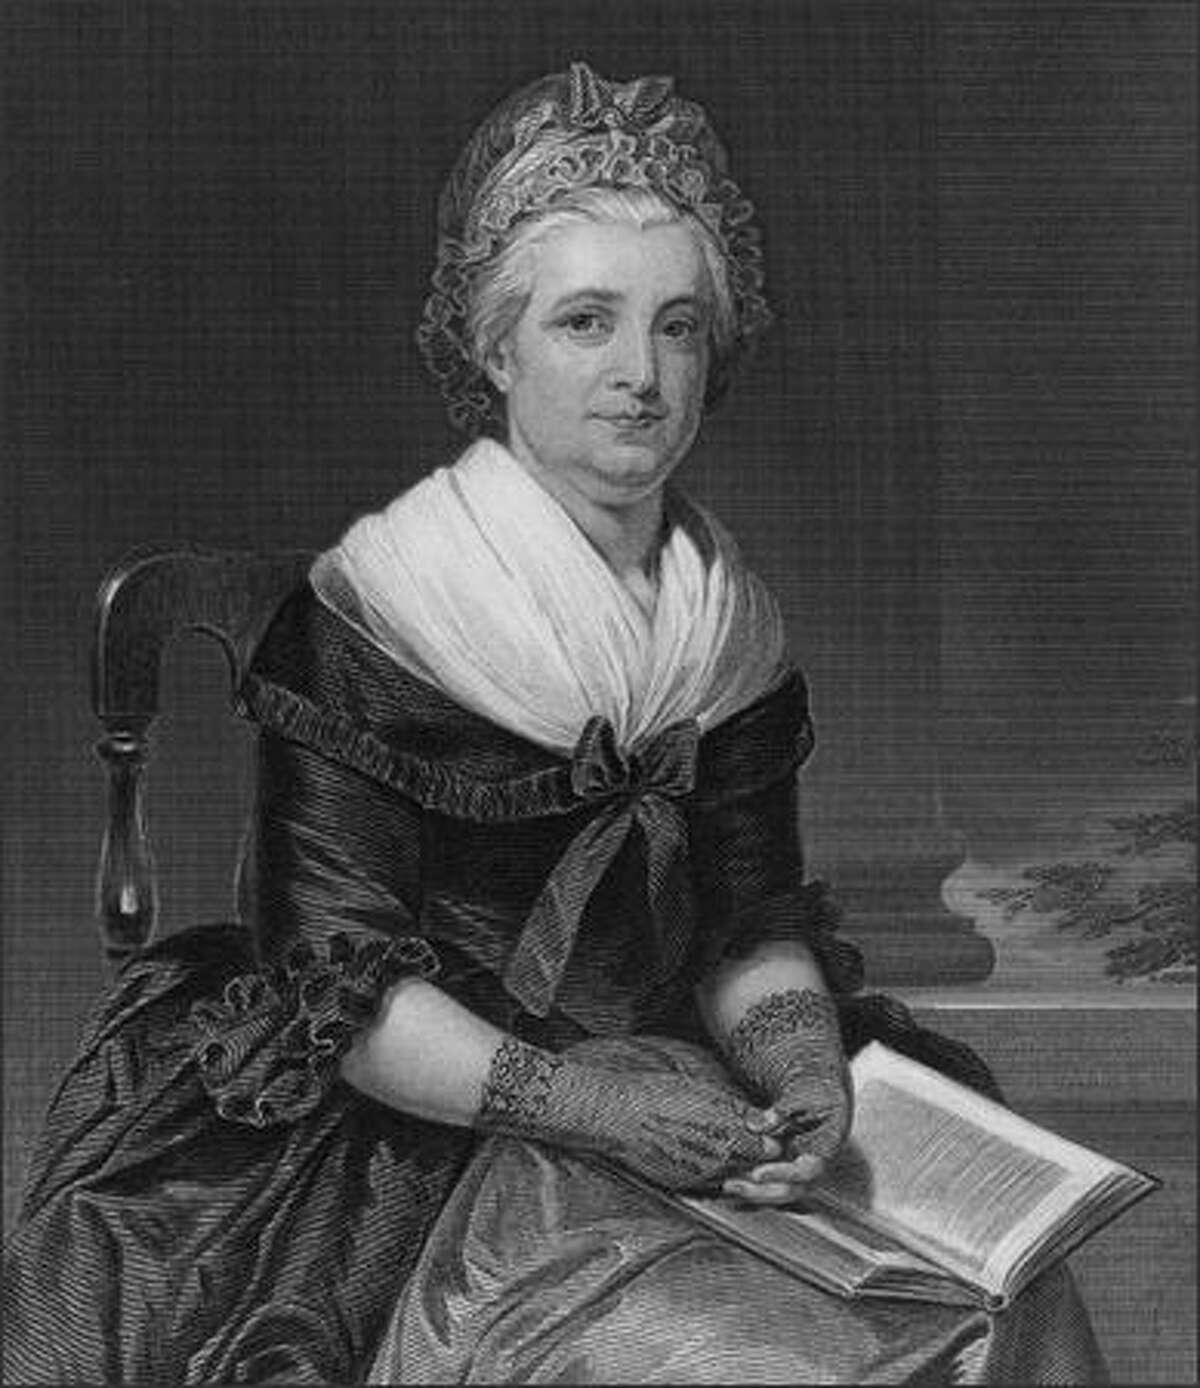 """""""Historical Hotties"""": People found images depicting some famous people from past centuries. We don't have access to the same images, so we'll do the best we can. Martha Washington (1732 - 1802), wife of George Washington, was presented as a 27-year-old. She's a bit older here."""